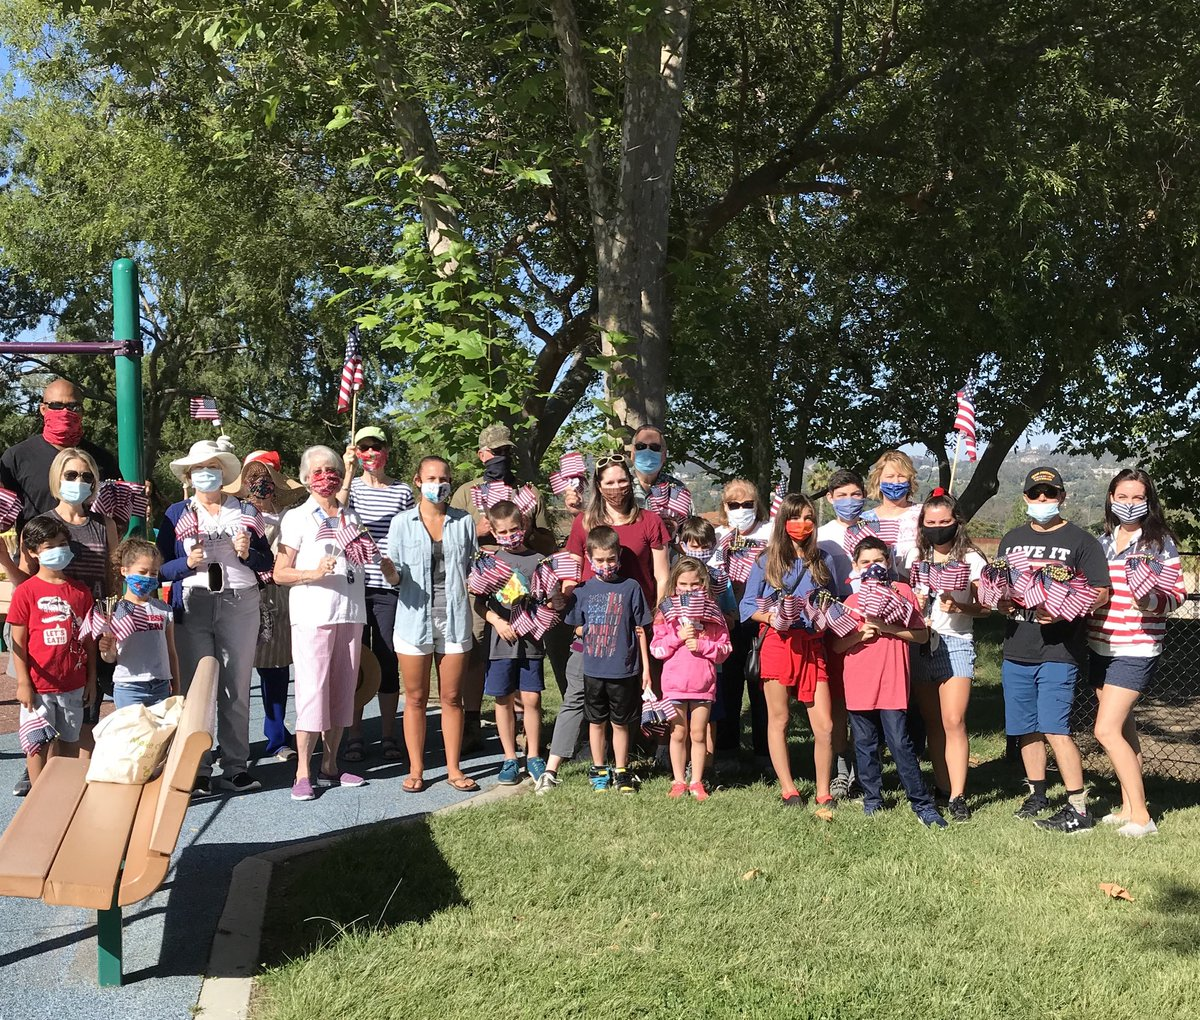 Over 1,000 flags going up at Lake Poway for July 4 compliments of local chapter of DAR! https://t.co/FVSJZ9KHBv